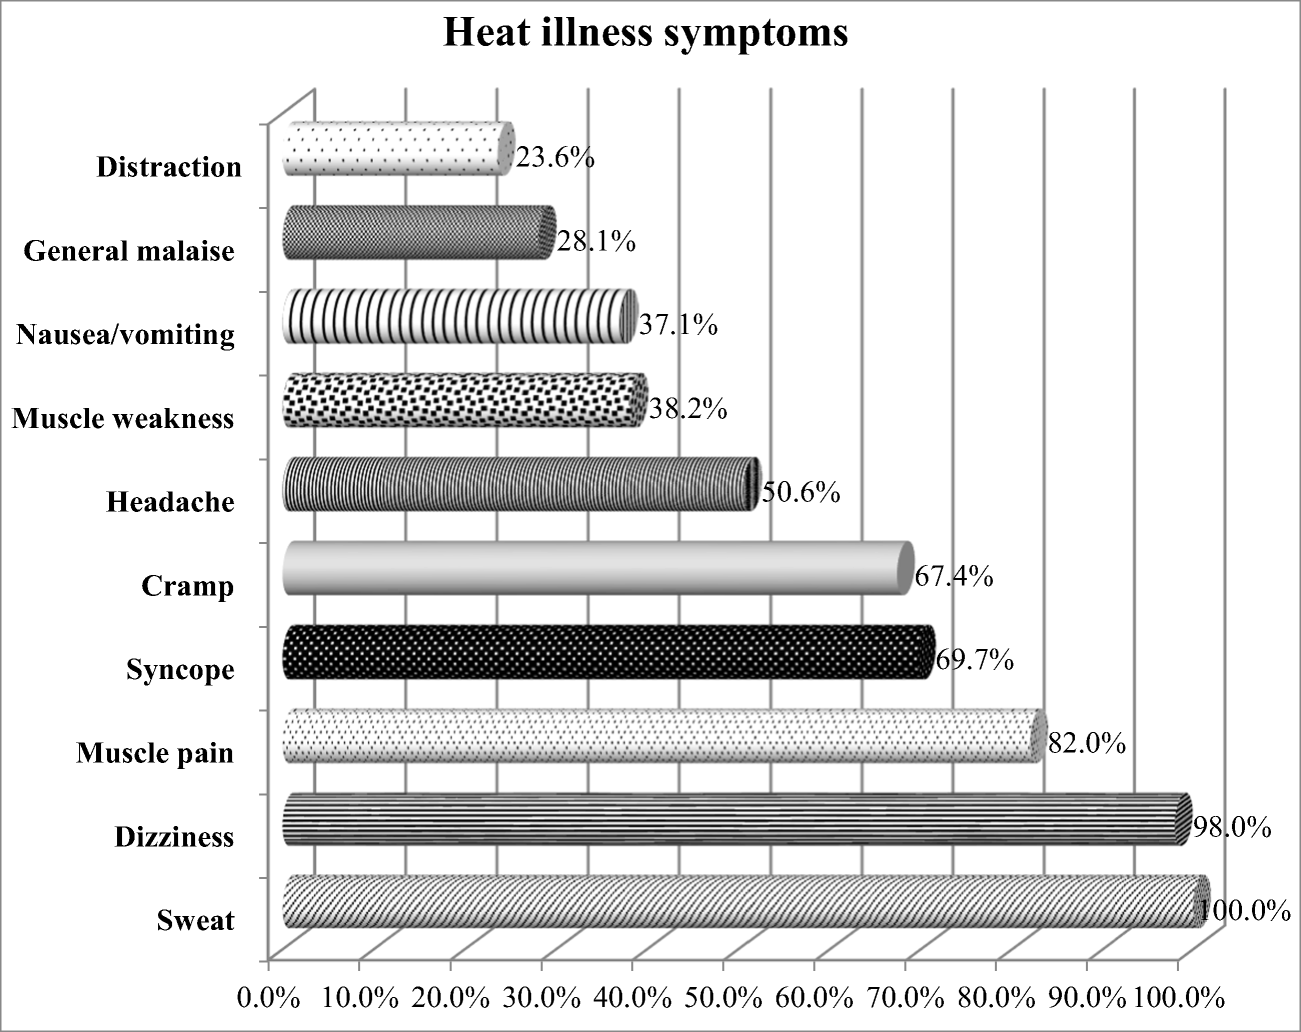 Exertional heat illness: knowledge and behavior among